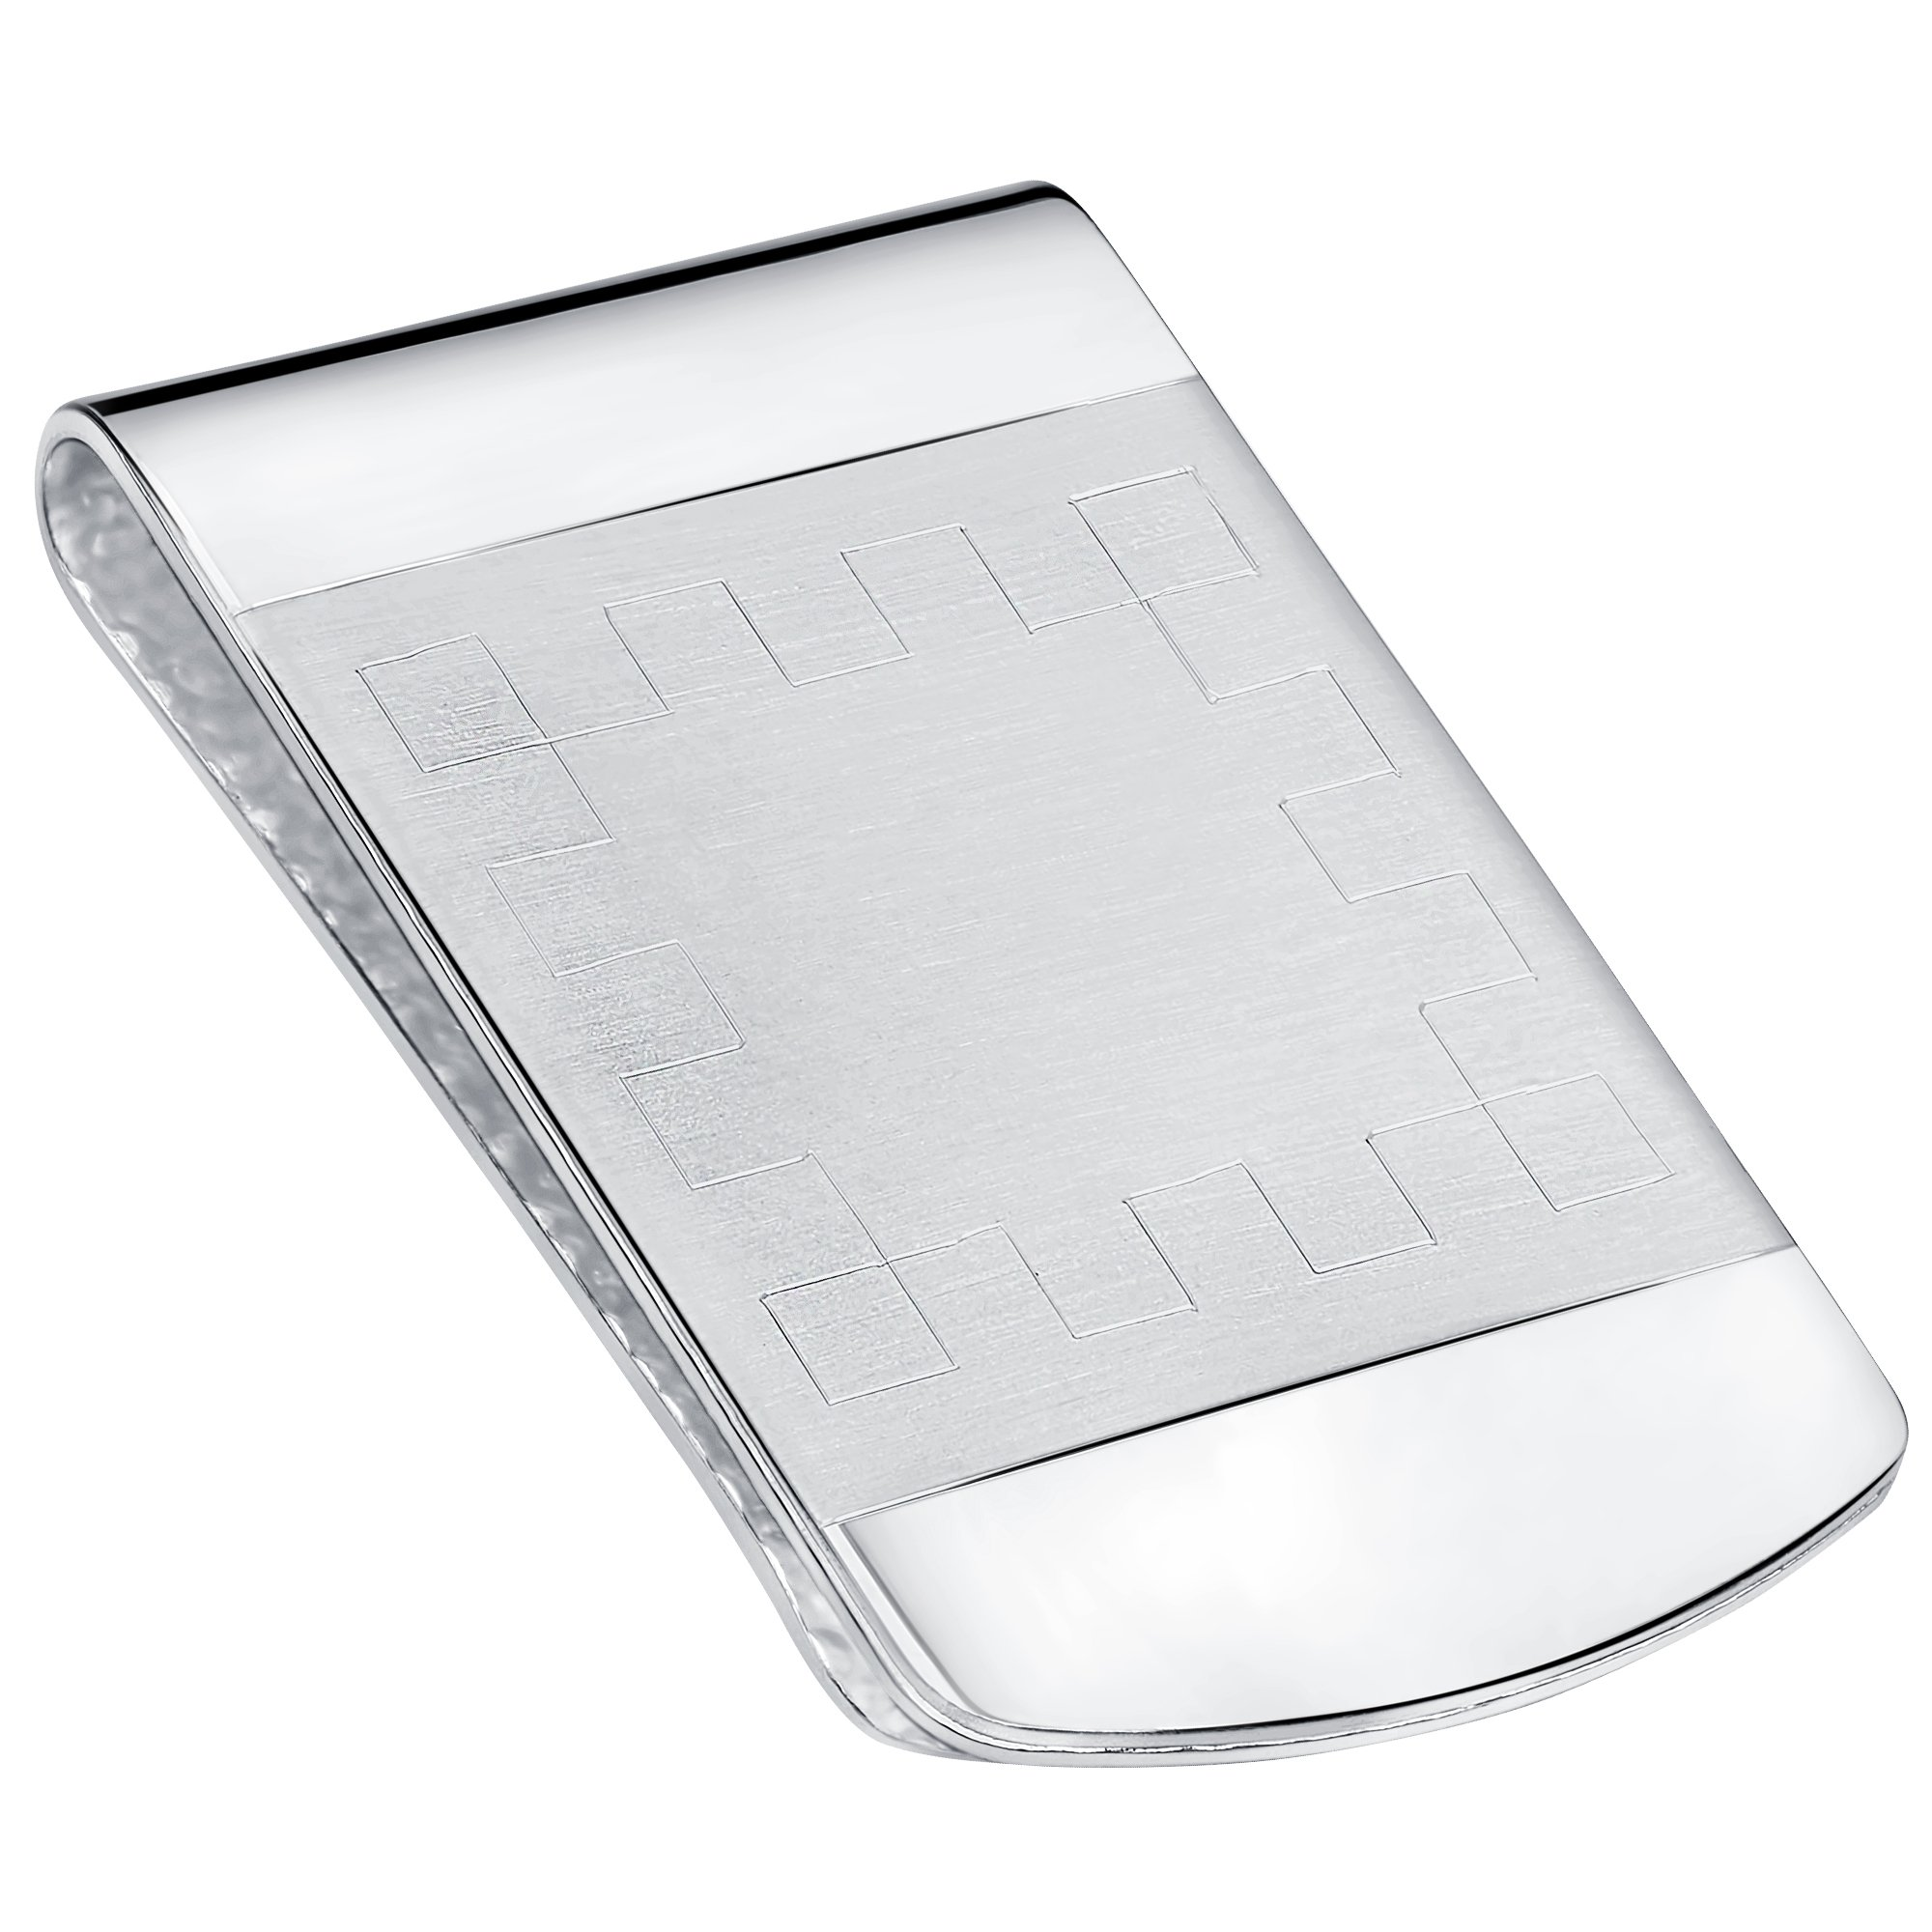 Sterling Silver .925 Engravable Satin Center Accent Solid Design Money Clip. Designed and Made In Italy. By Sterling Manufacturers by Sterling Manufacturers